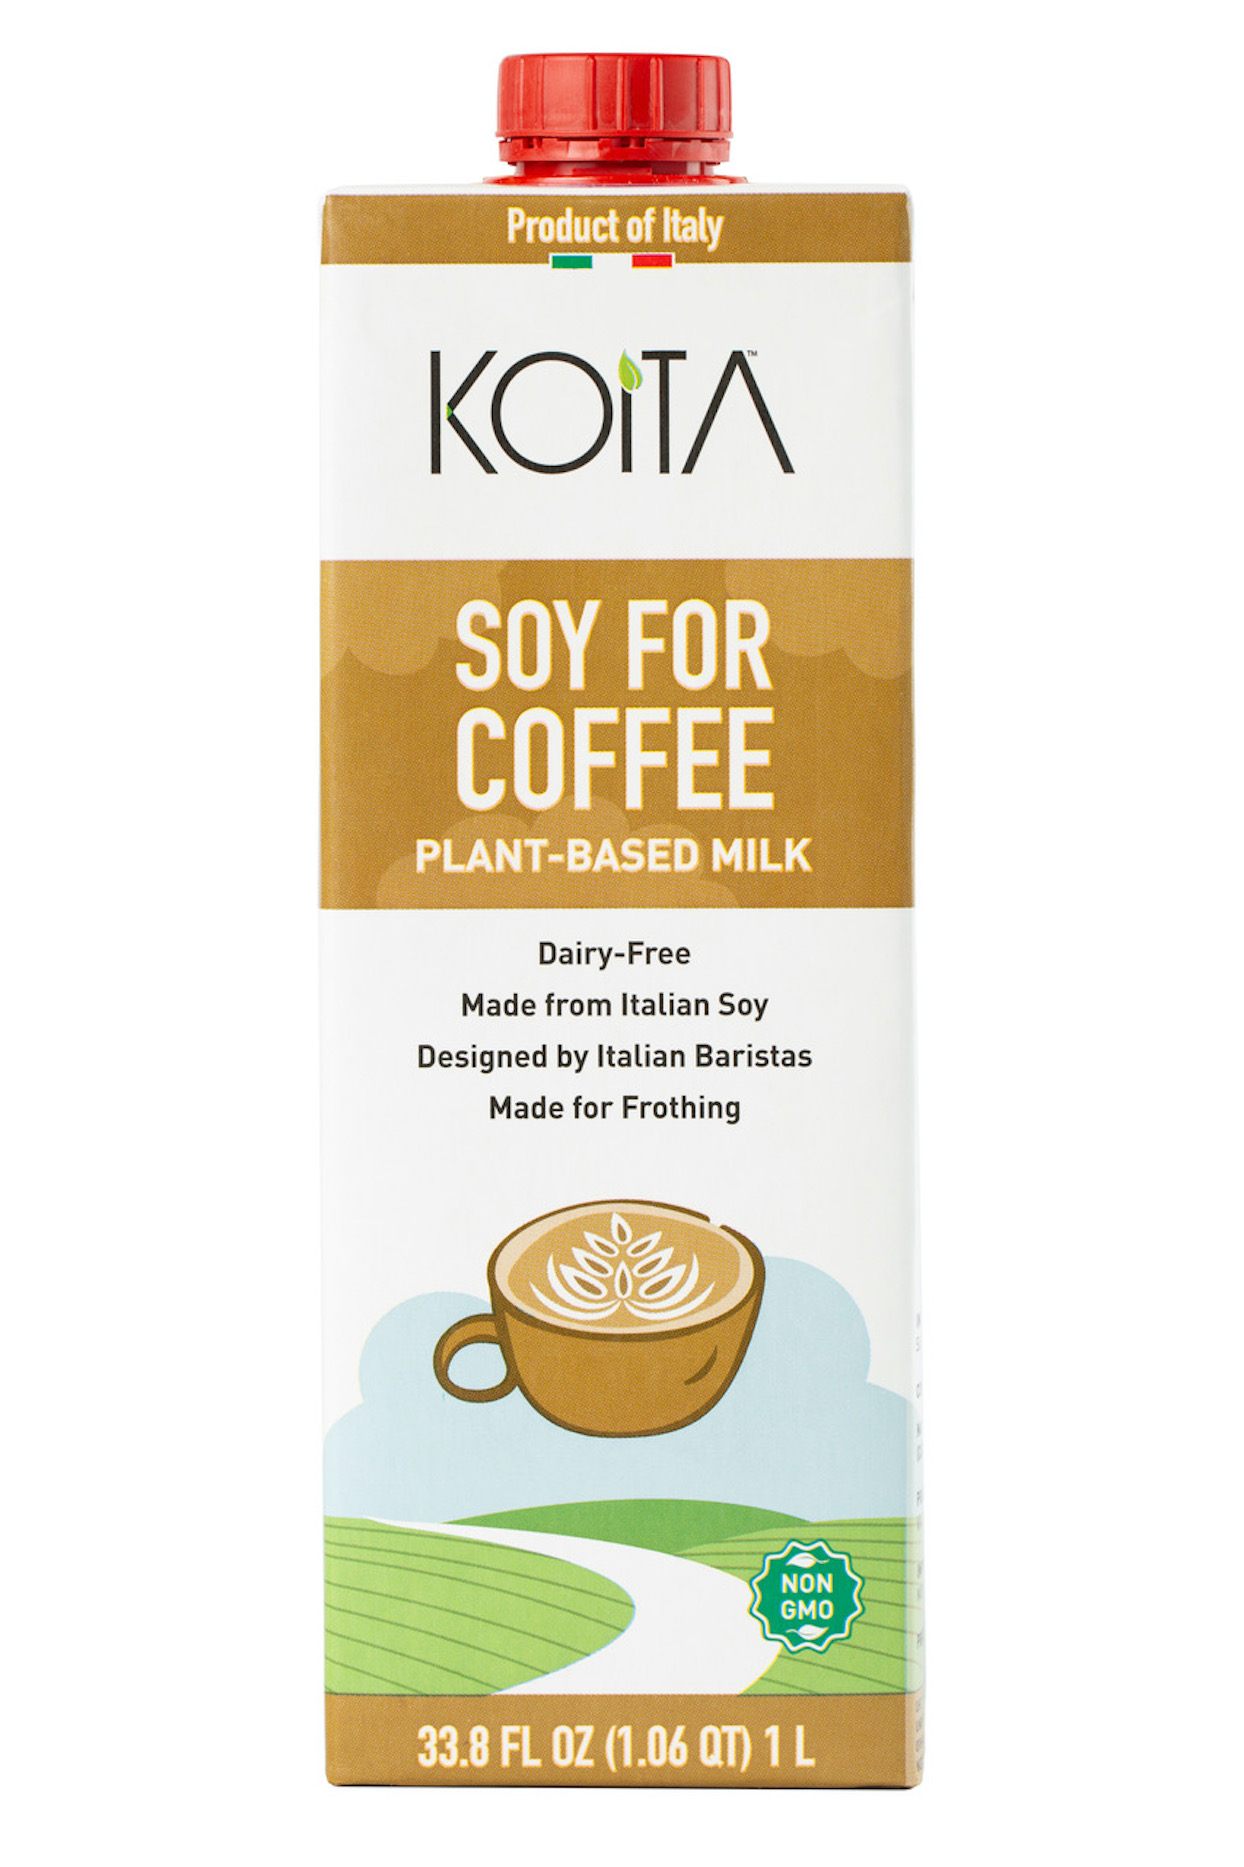 Koita Soy For Coffee Packaging